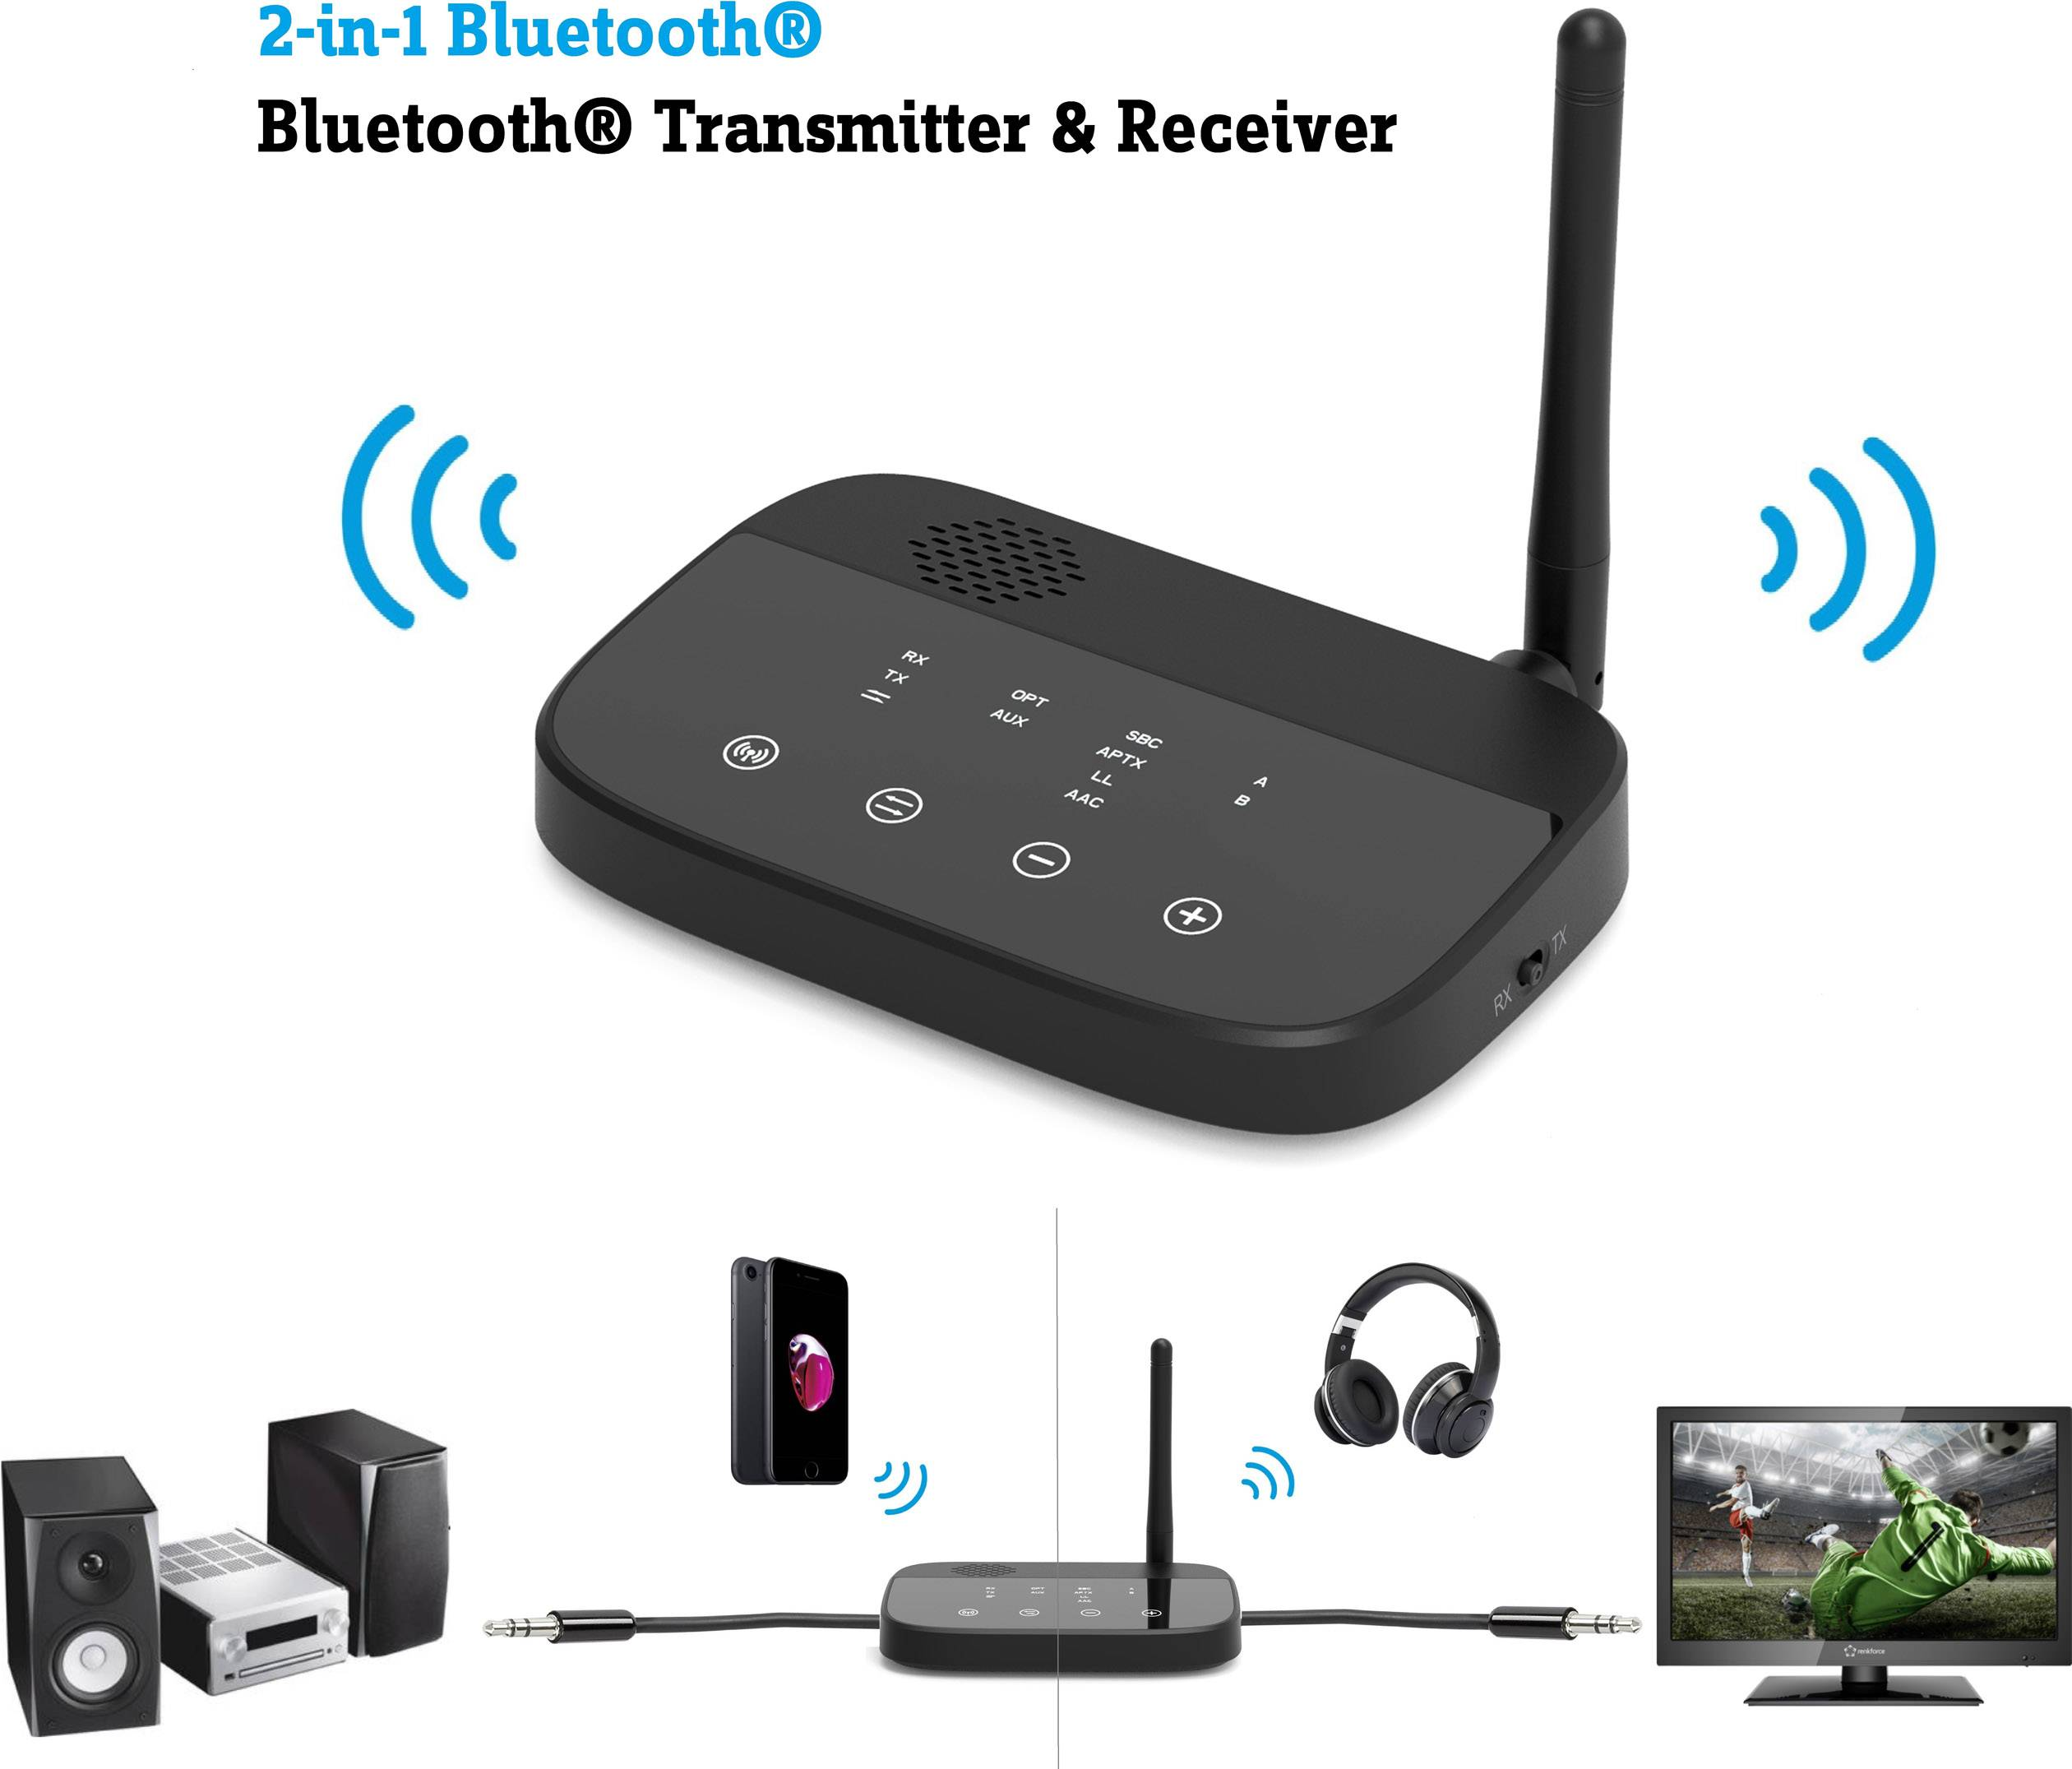 Renkforce BTHP-100 Bluetooth® audio transmitter/receiver